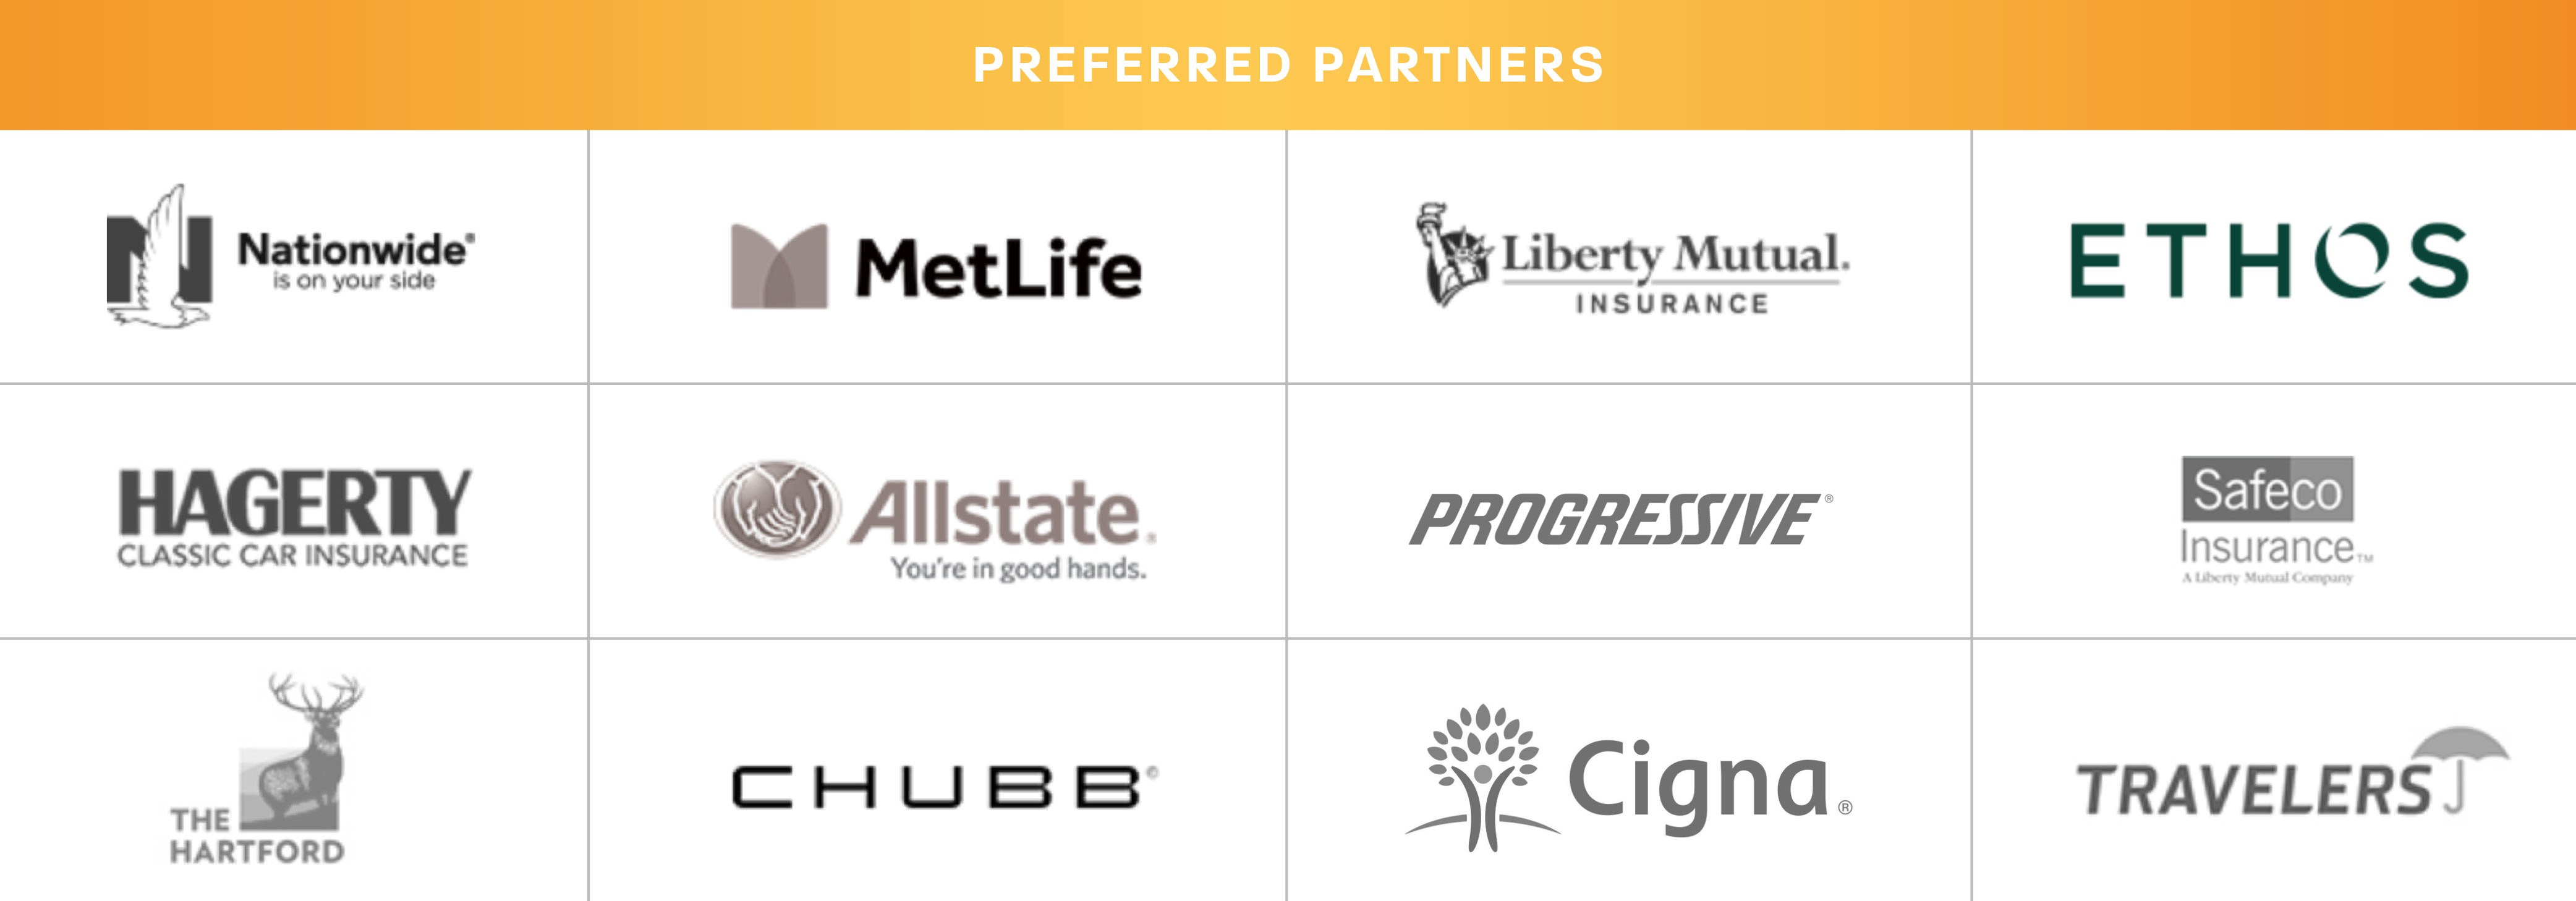 Preferred Partners